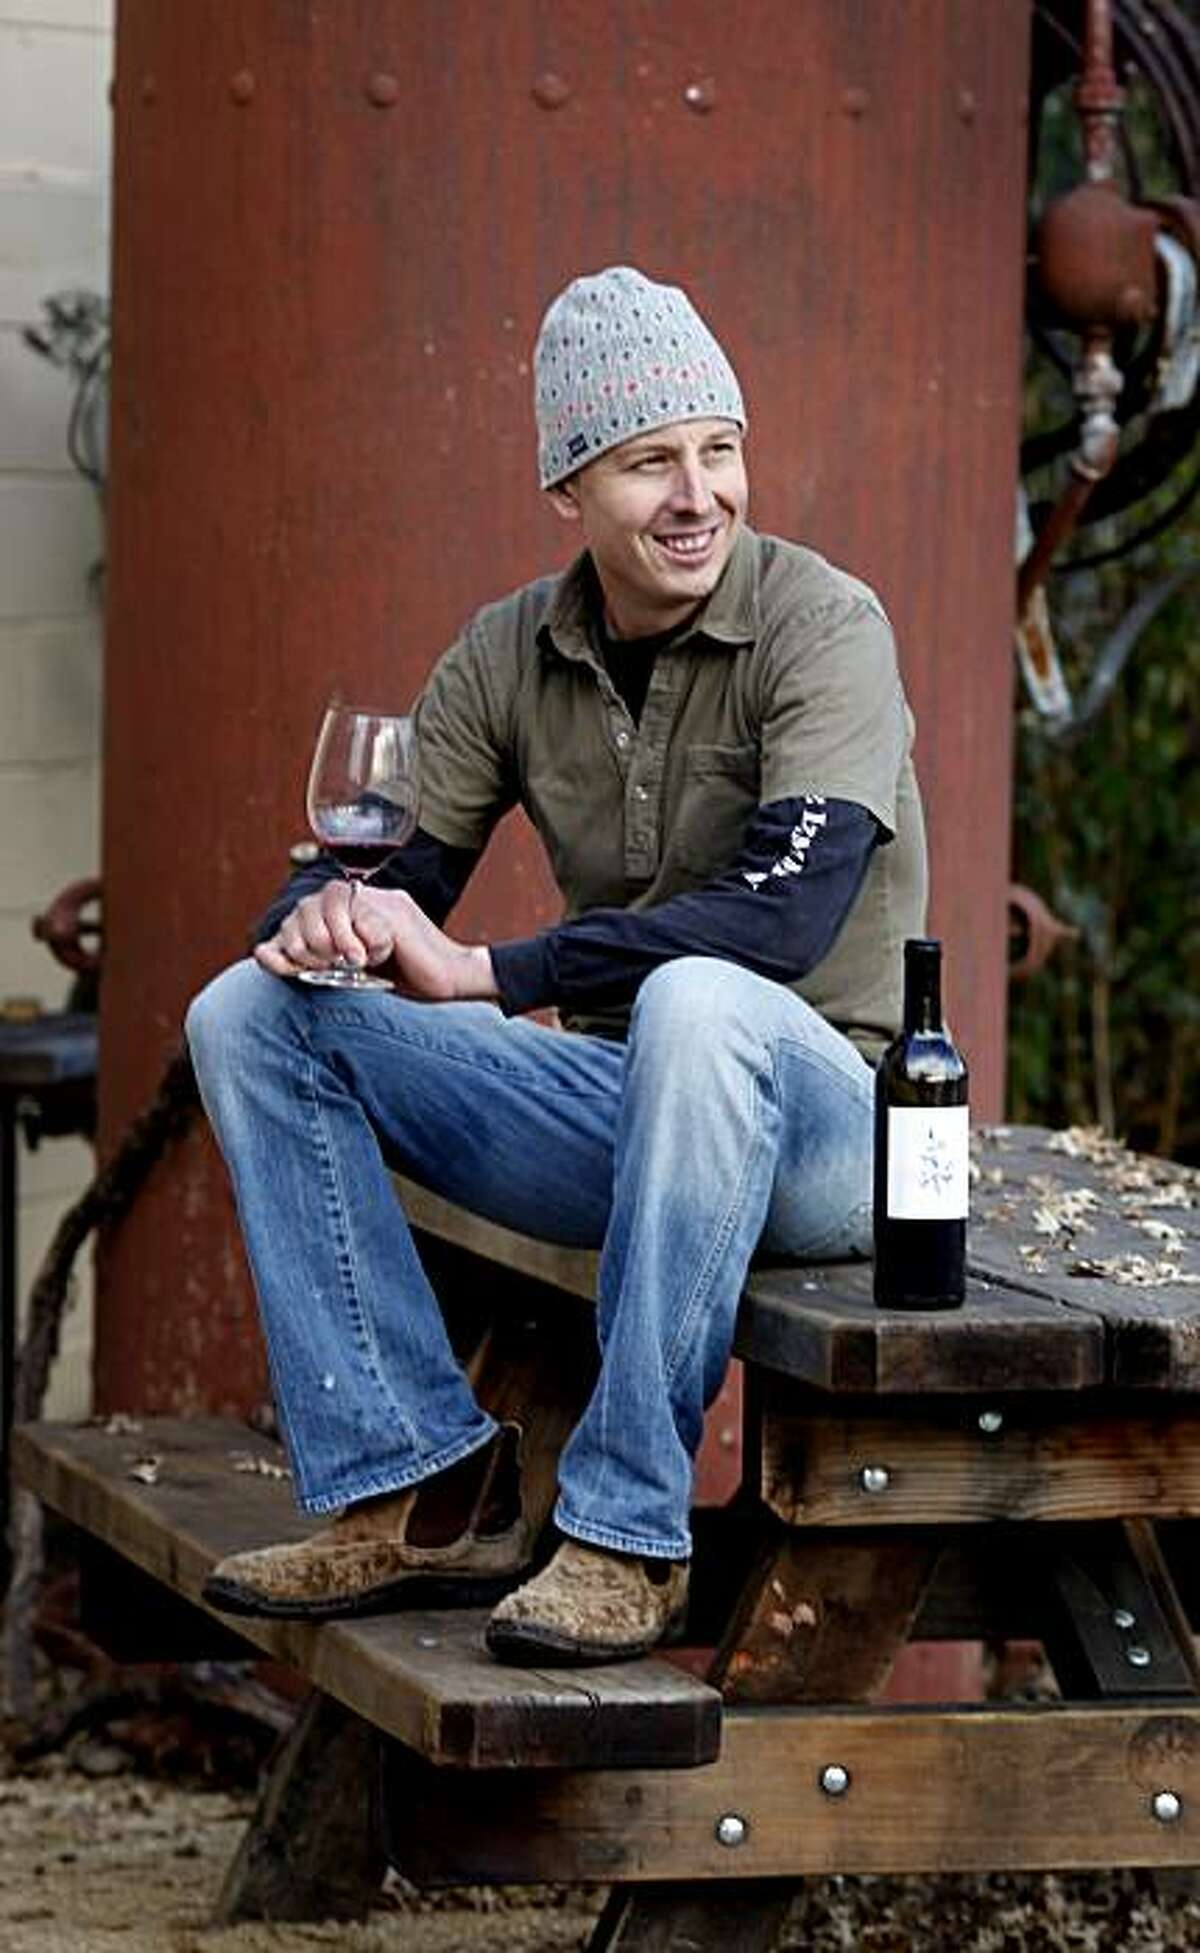 Winemaker Duncan Arnot Meyers. Duncan Arnot Meyers and Nathan Lee Roberts of Arnot-Roberts in Forestville have been friends since childhood.